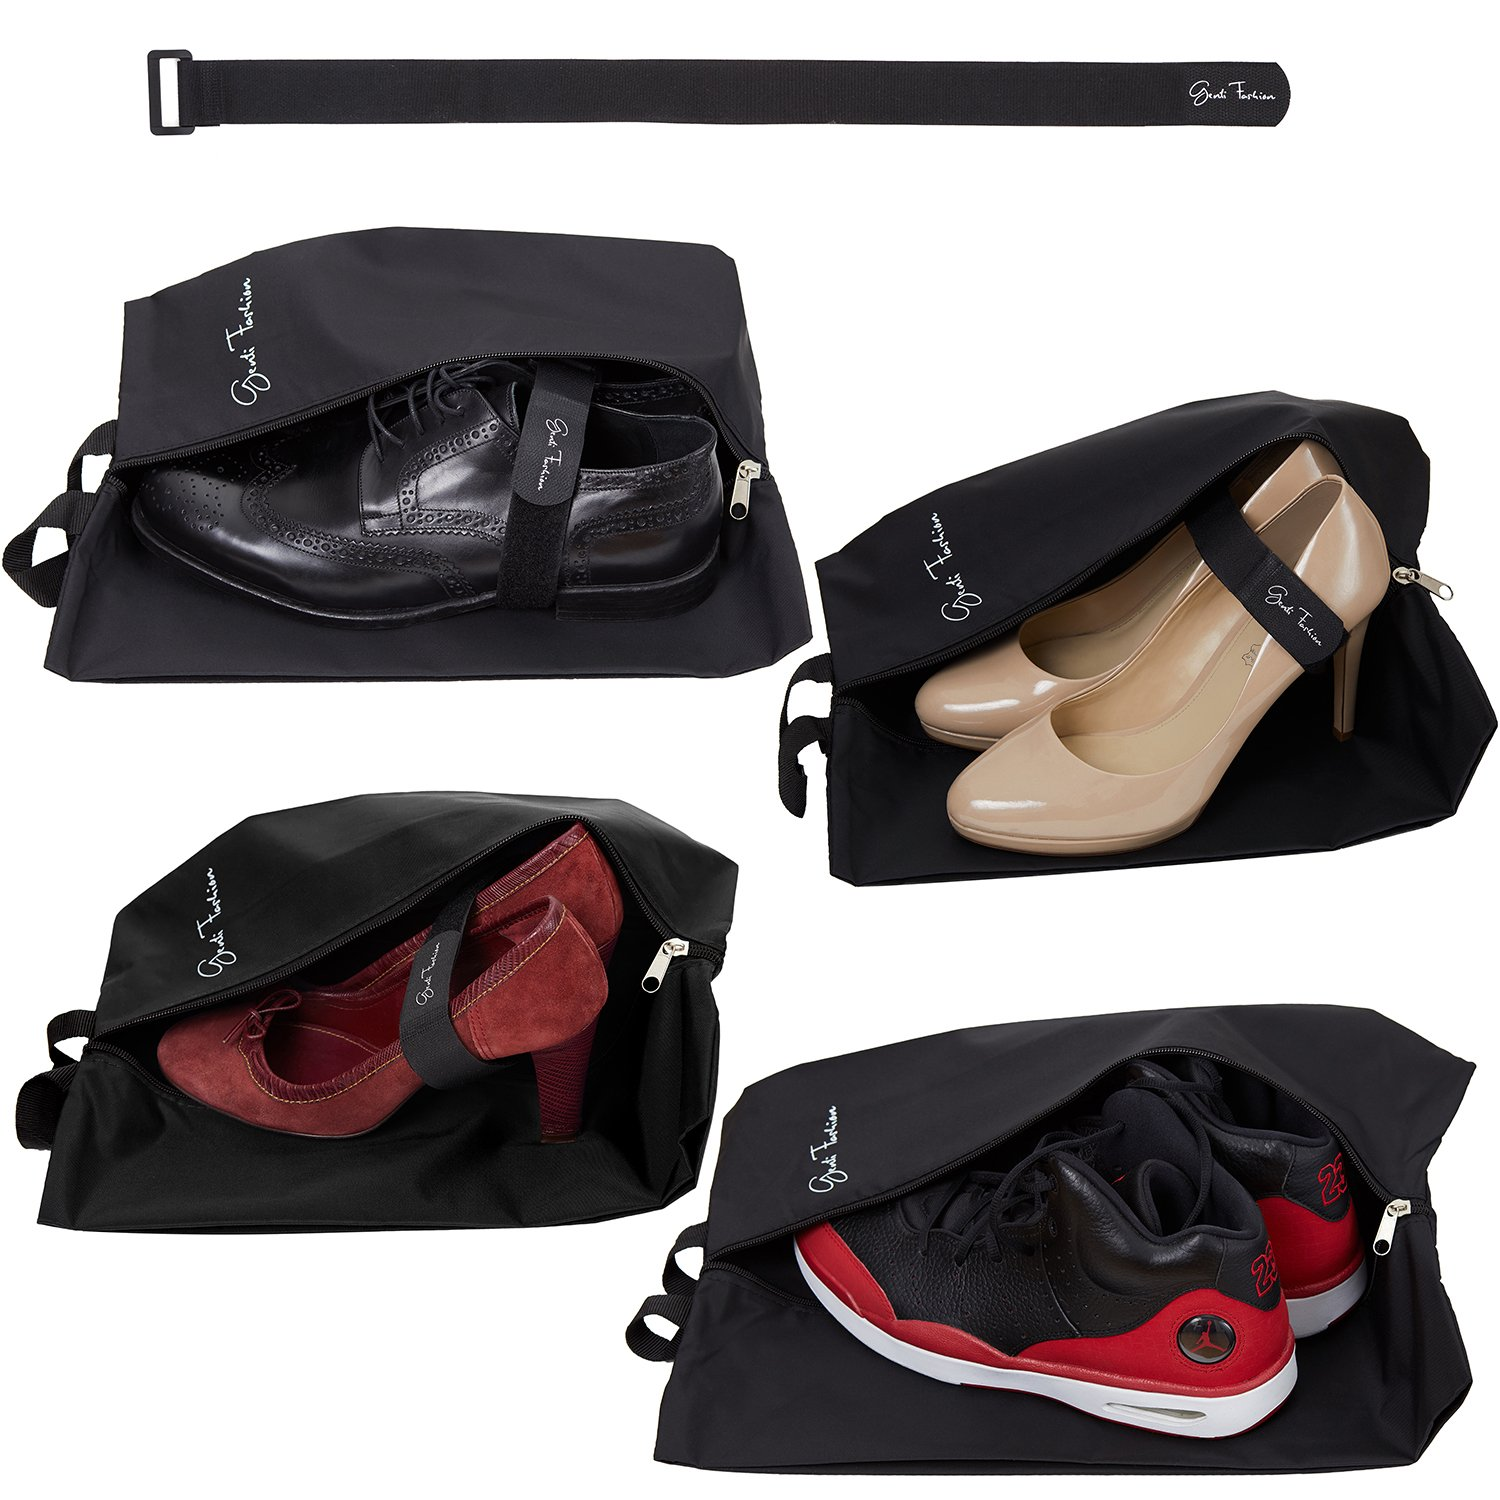 Travel Shoe Bags for Men & Women - Set of 4 Waterproof Nylon Pouches with Zipper + Fastening Strap Accessory by Genti Fashion (Mixed, Black)